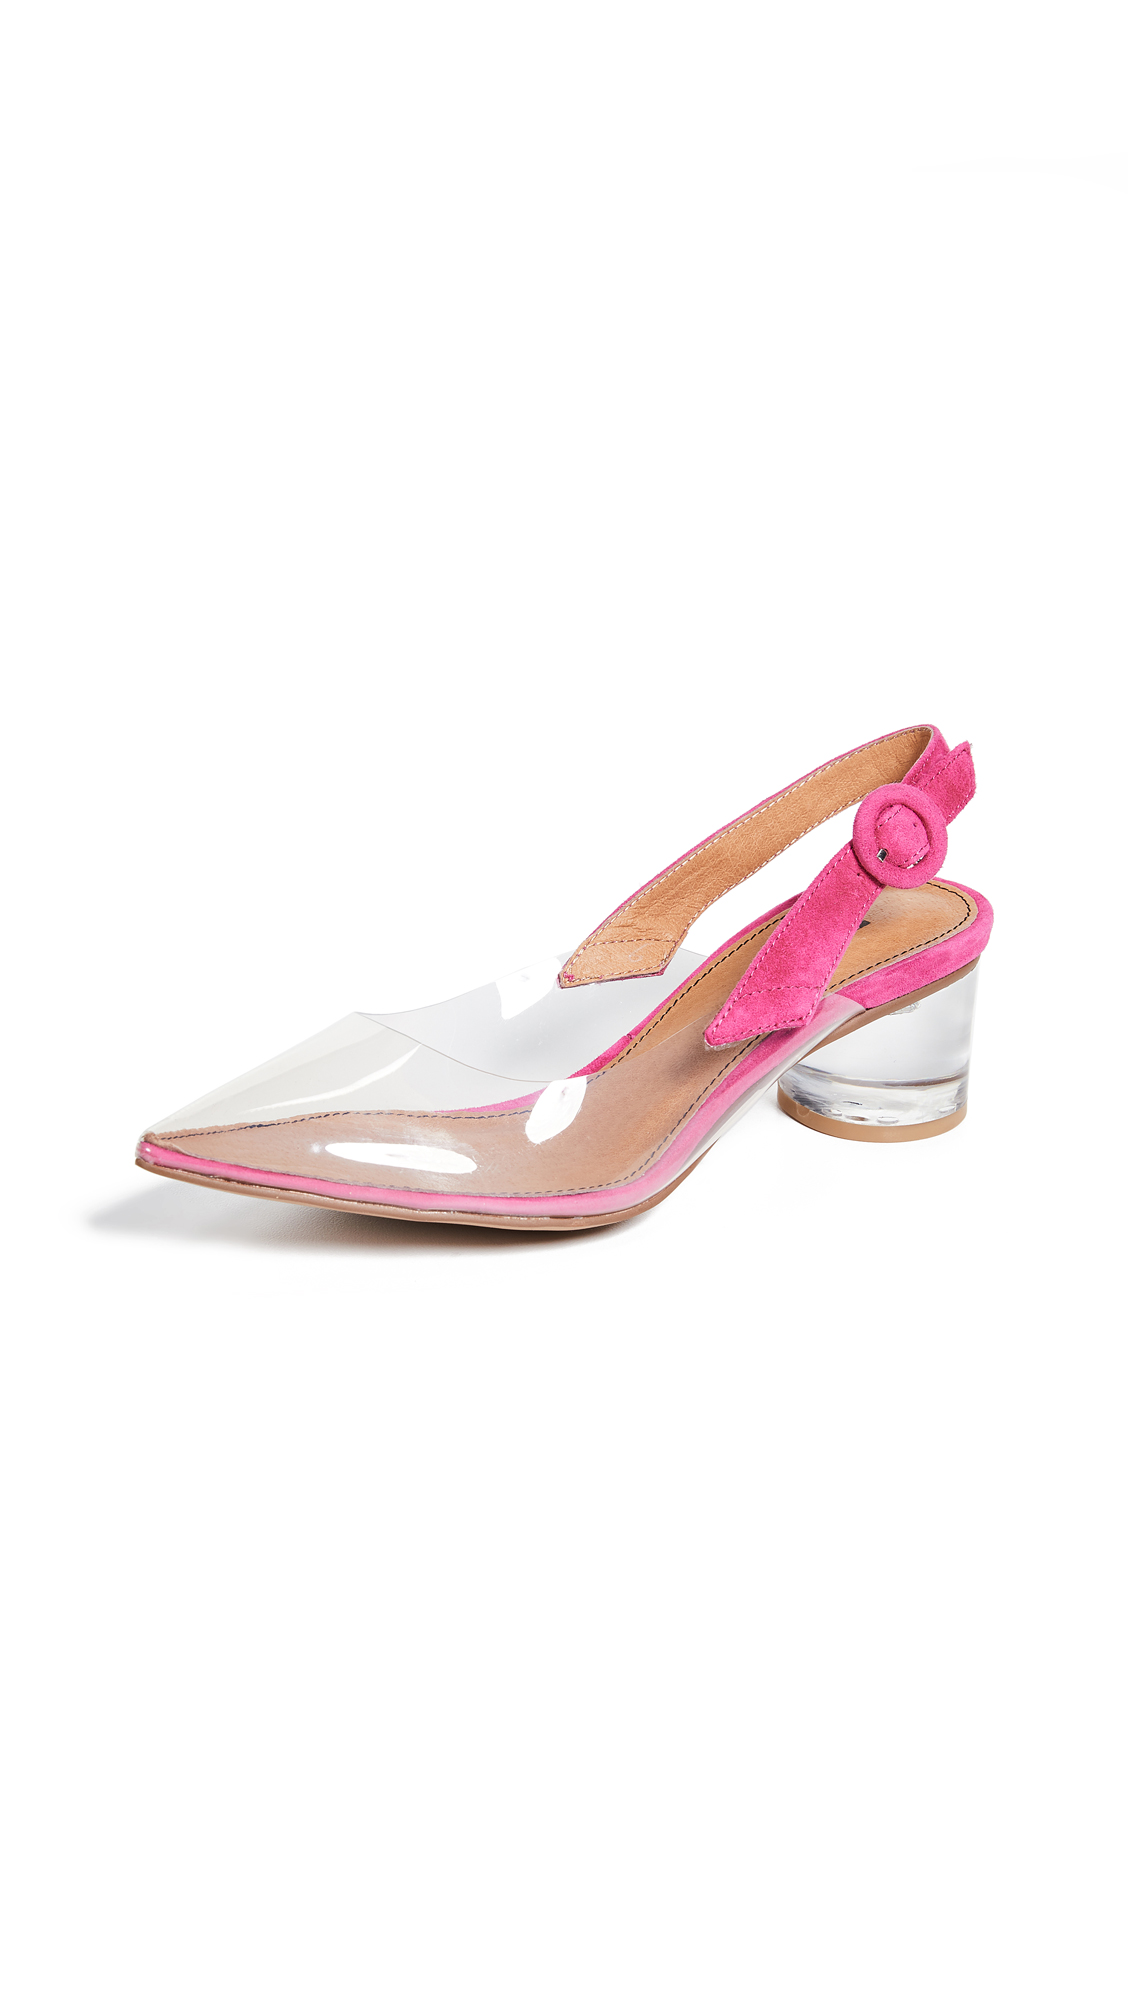 Photo of Matiko Zuma Block Heel Pumps - buy Matiko shoes